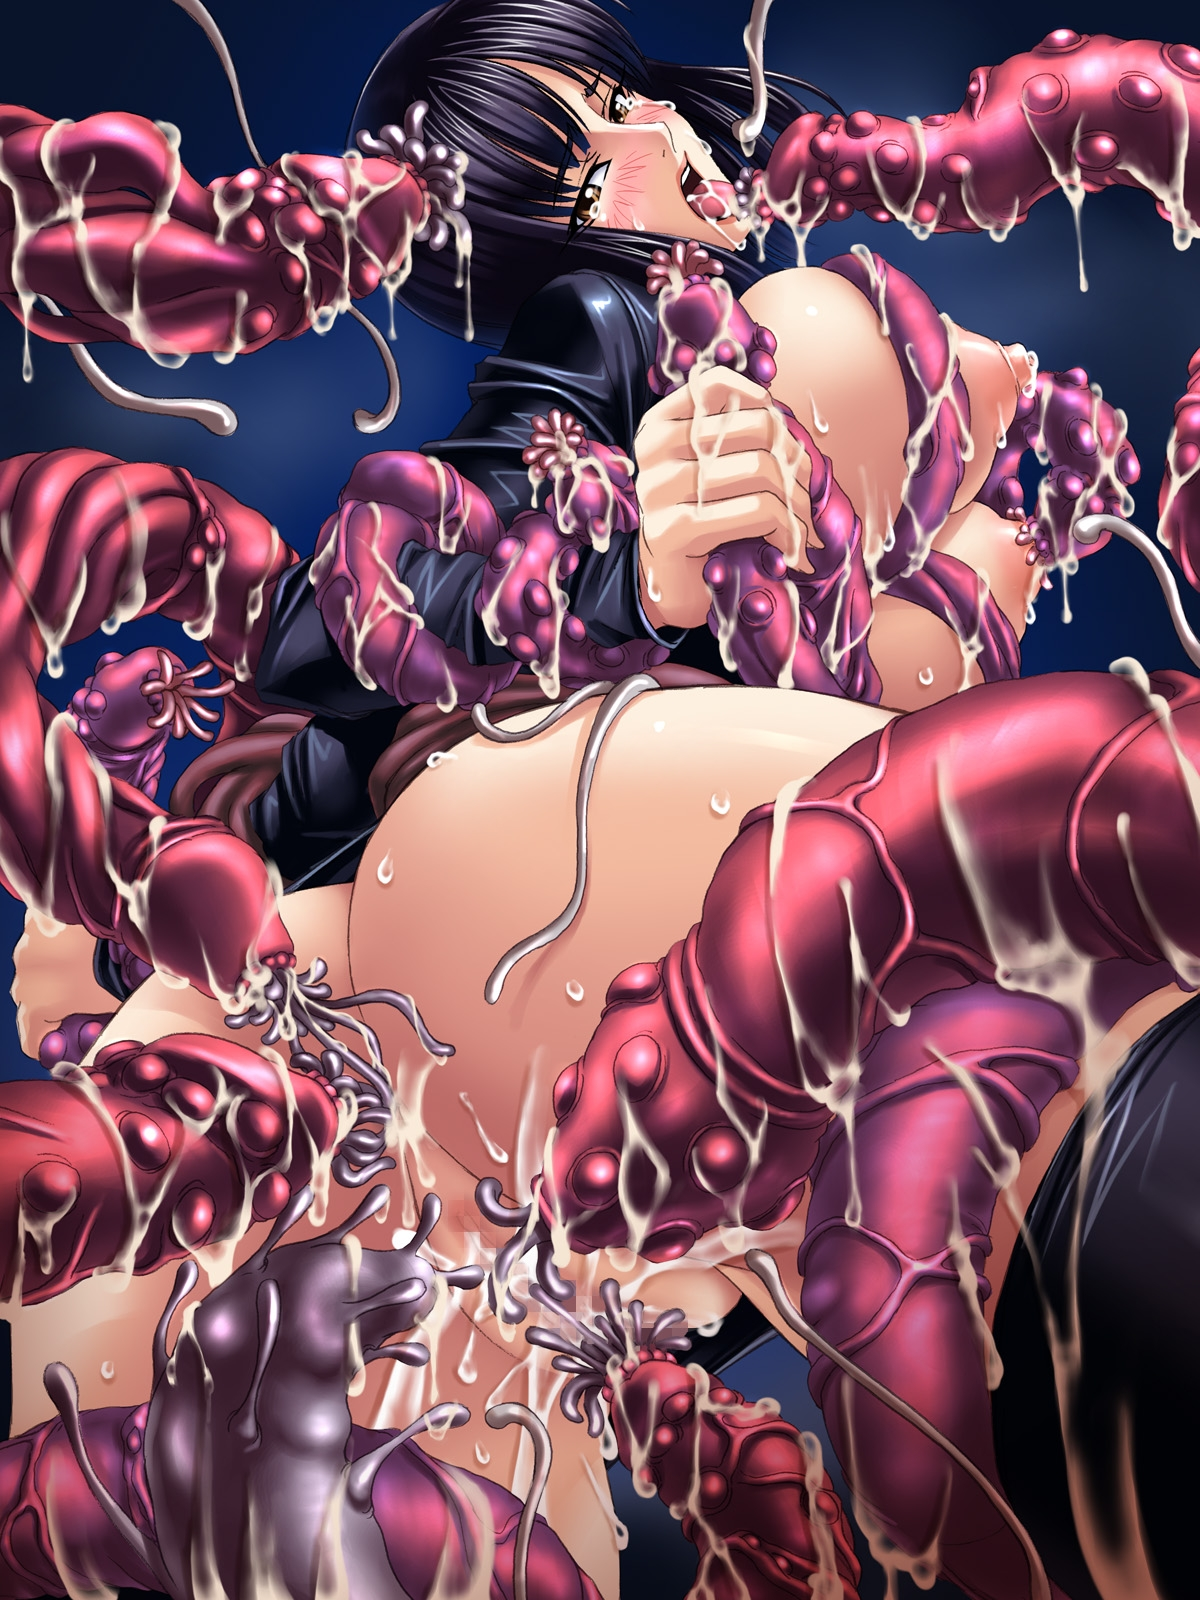 Toon sex pic ##00013047566 ass blush breasts censored cum double handjob fellatio gangbang group sex handjob highres huge breasts kagami monster multiple penises nico robin nipples one piece open clothes open shirt oral penis pussy rape shirt sweat tear tentacle tongue